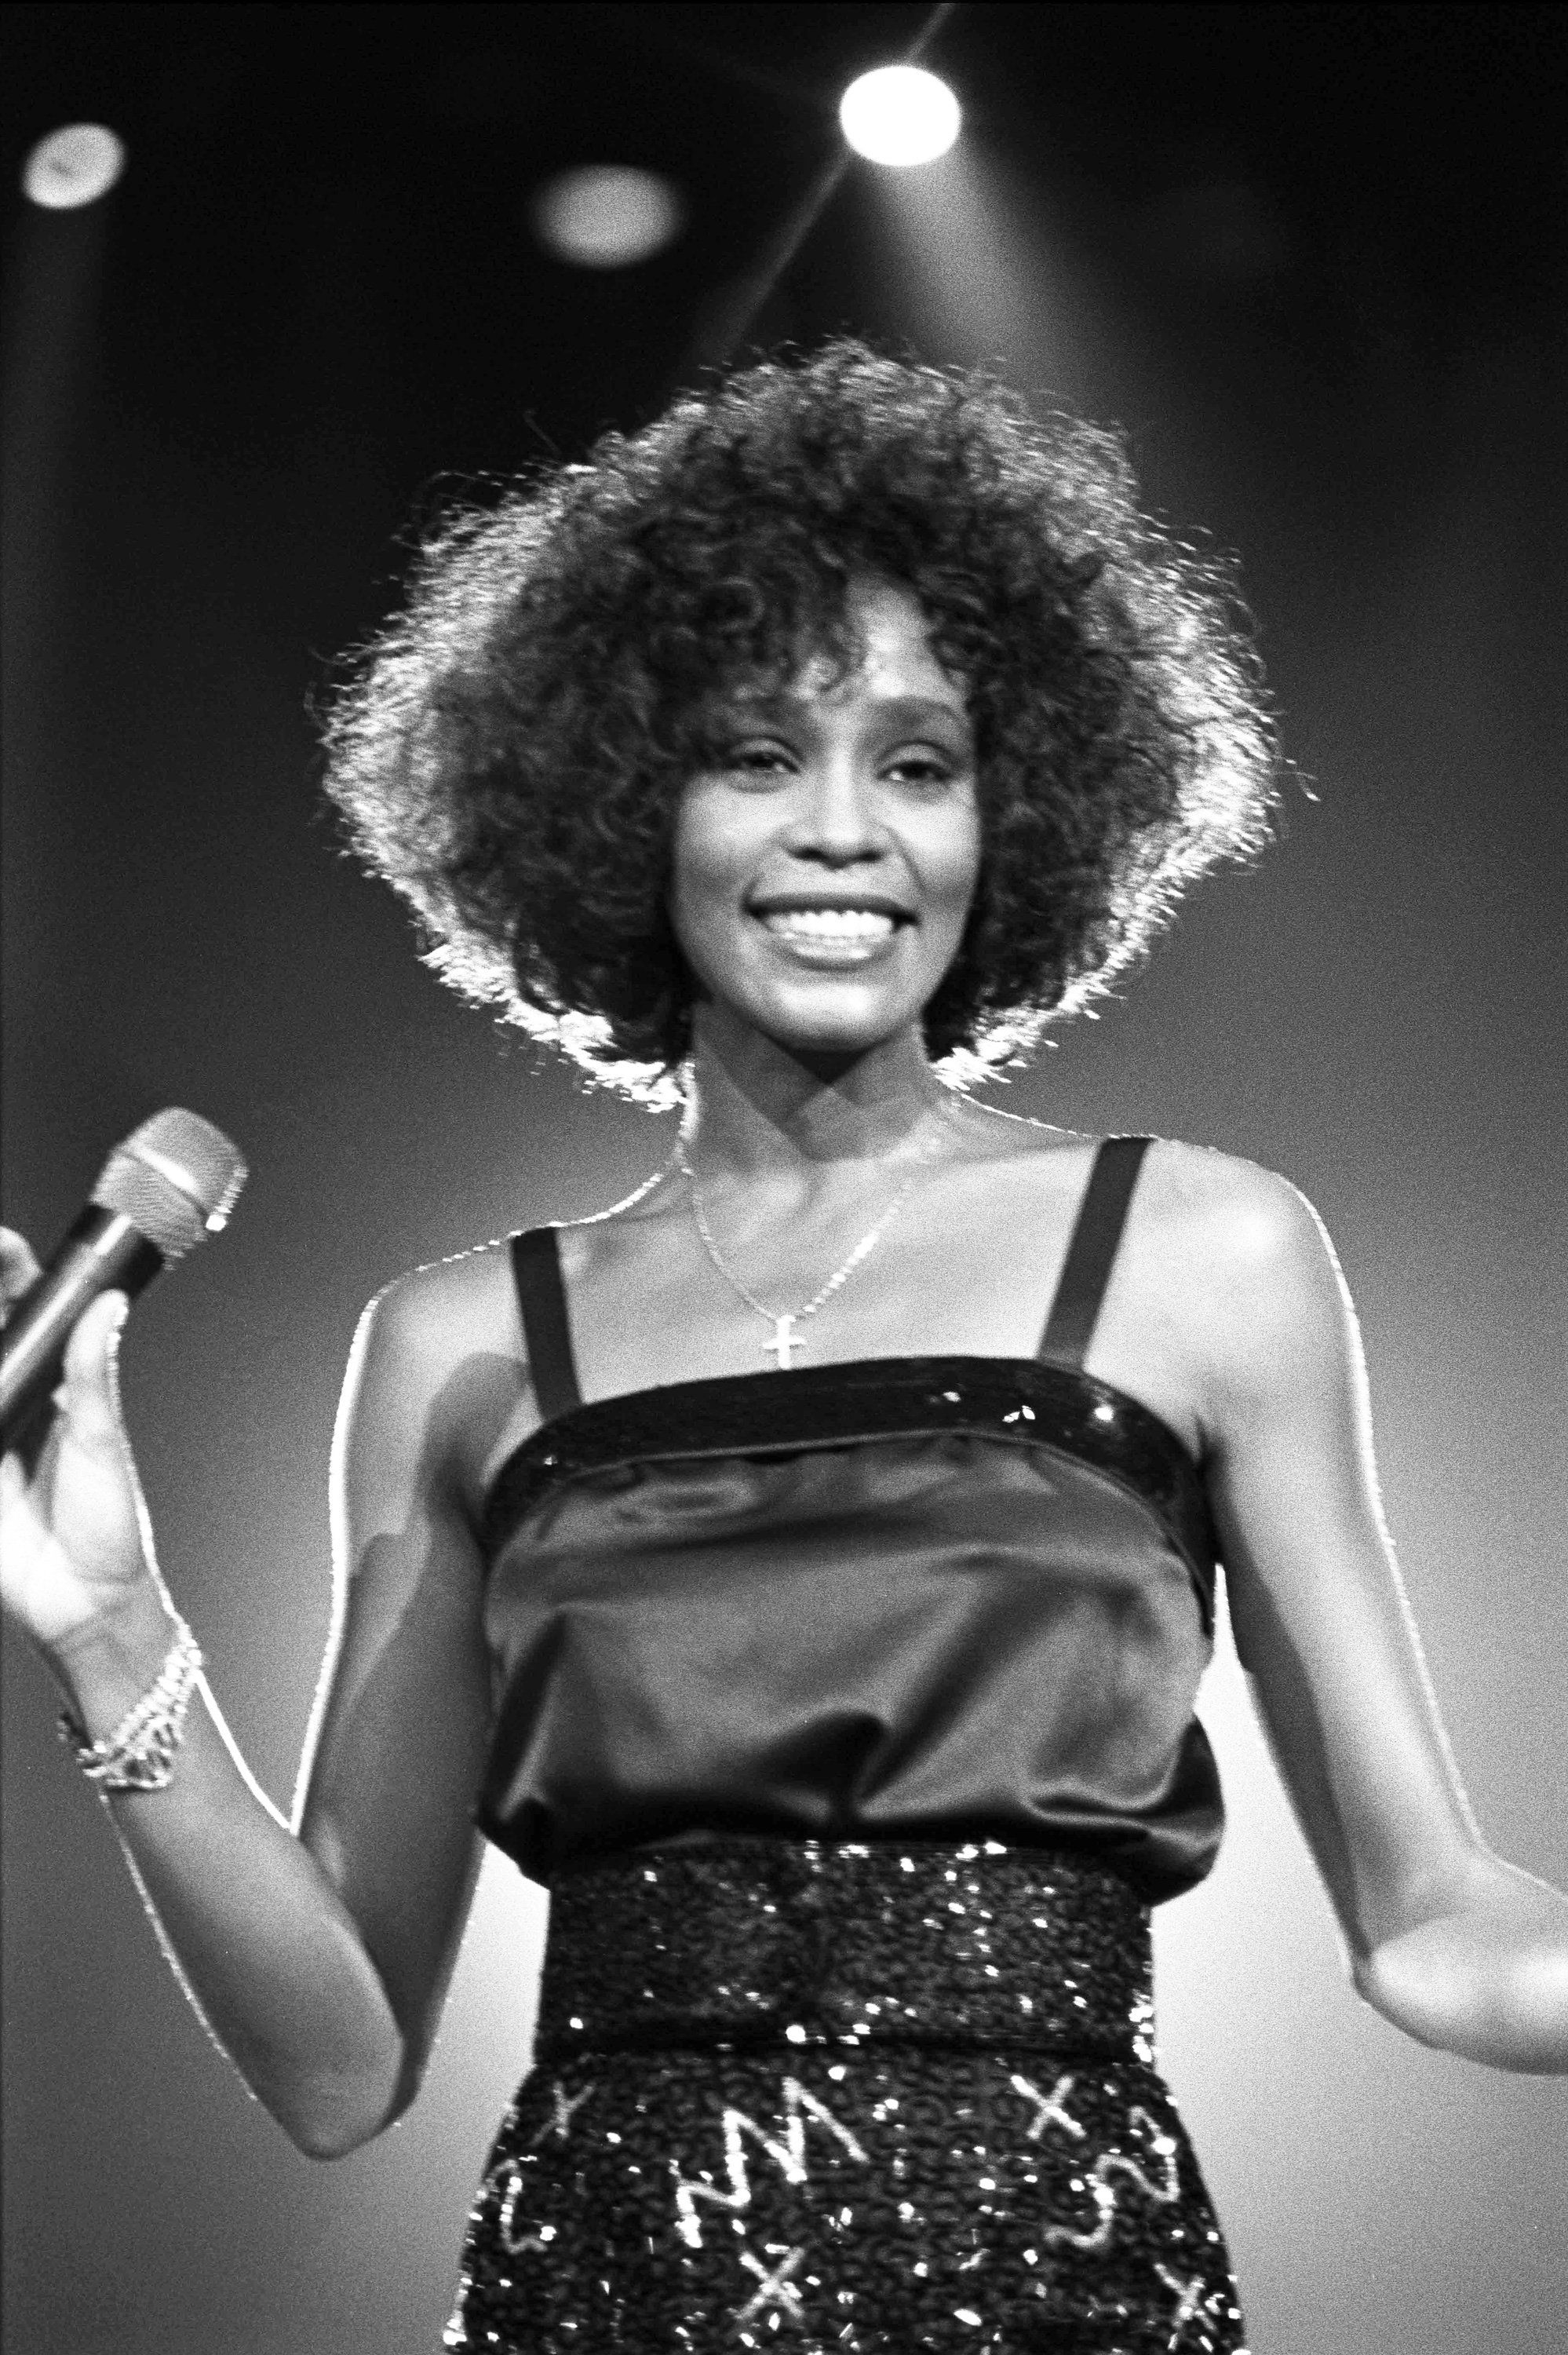 The First Authorized Whitney Houston Documentary Is in the